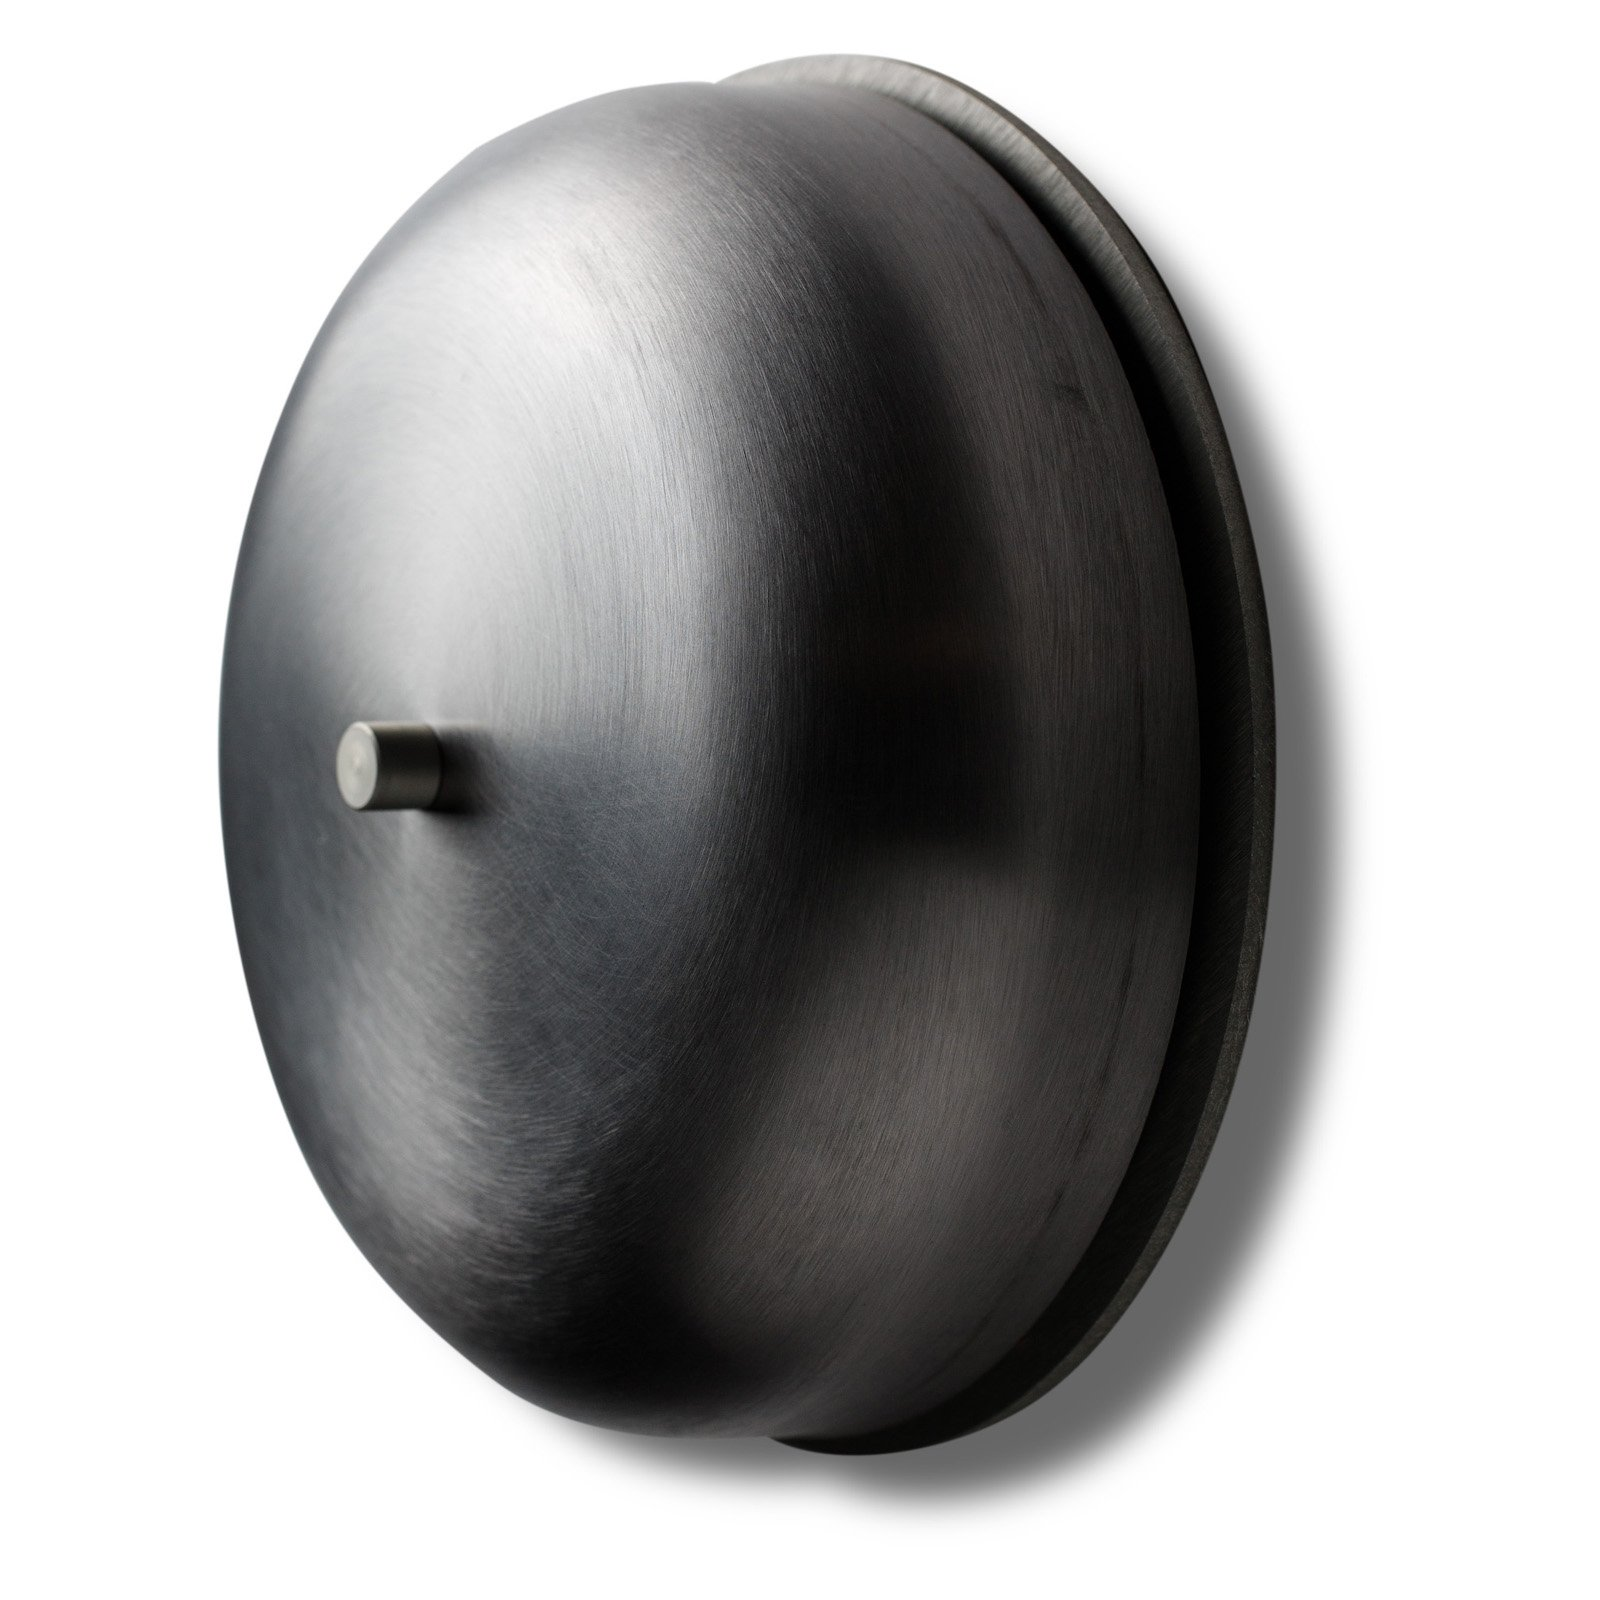 Spore Big Ring Doorbell Chime by